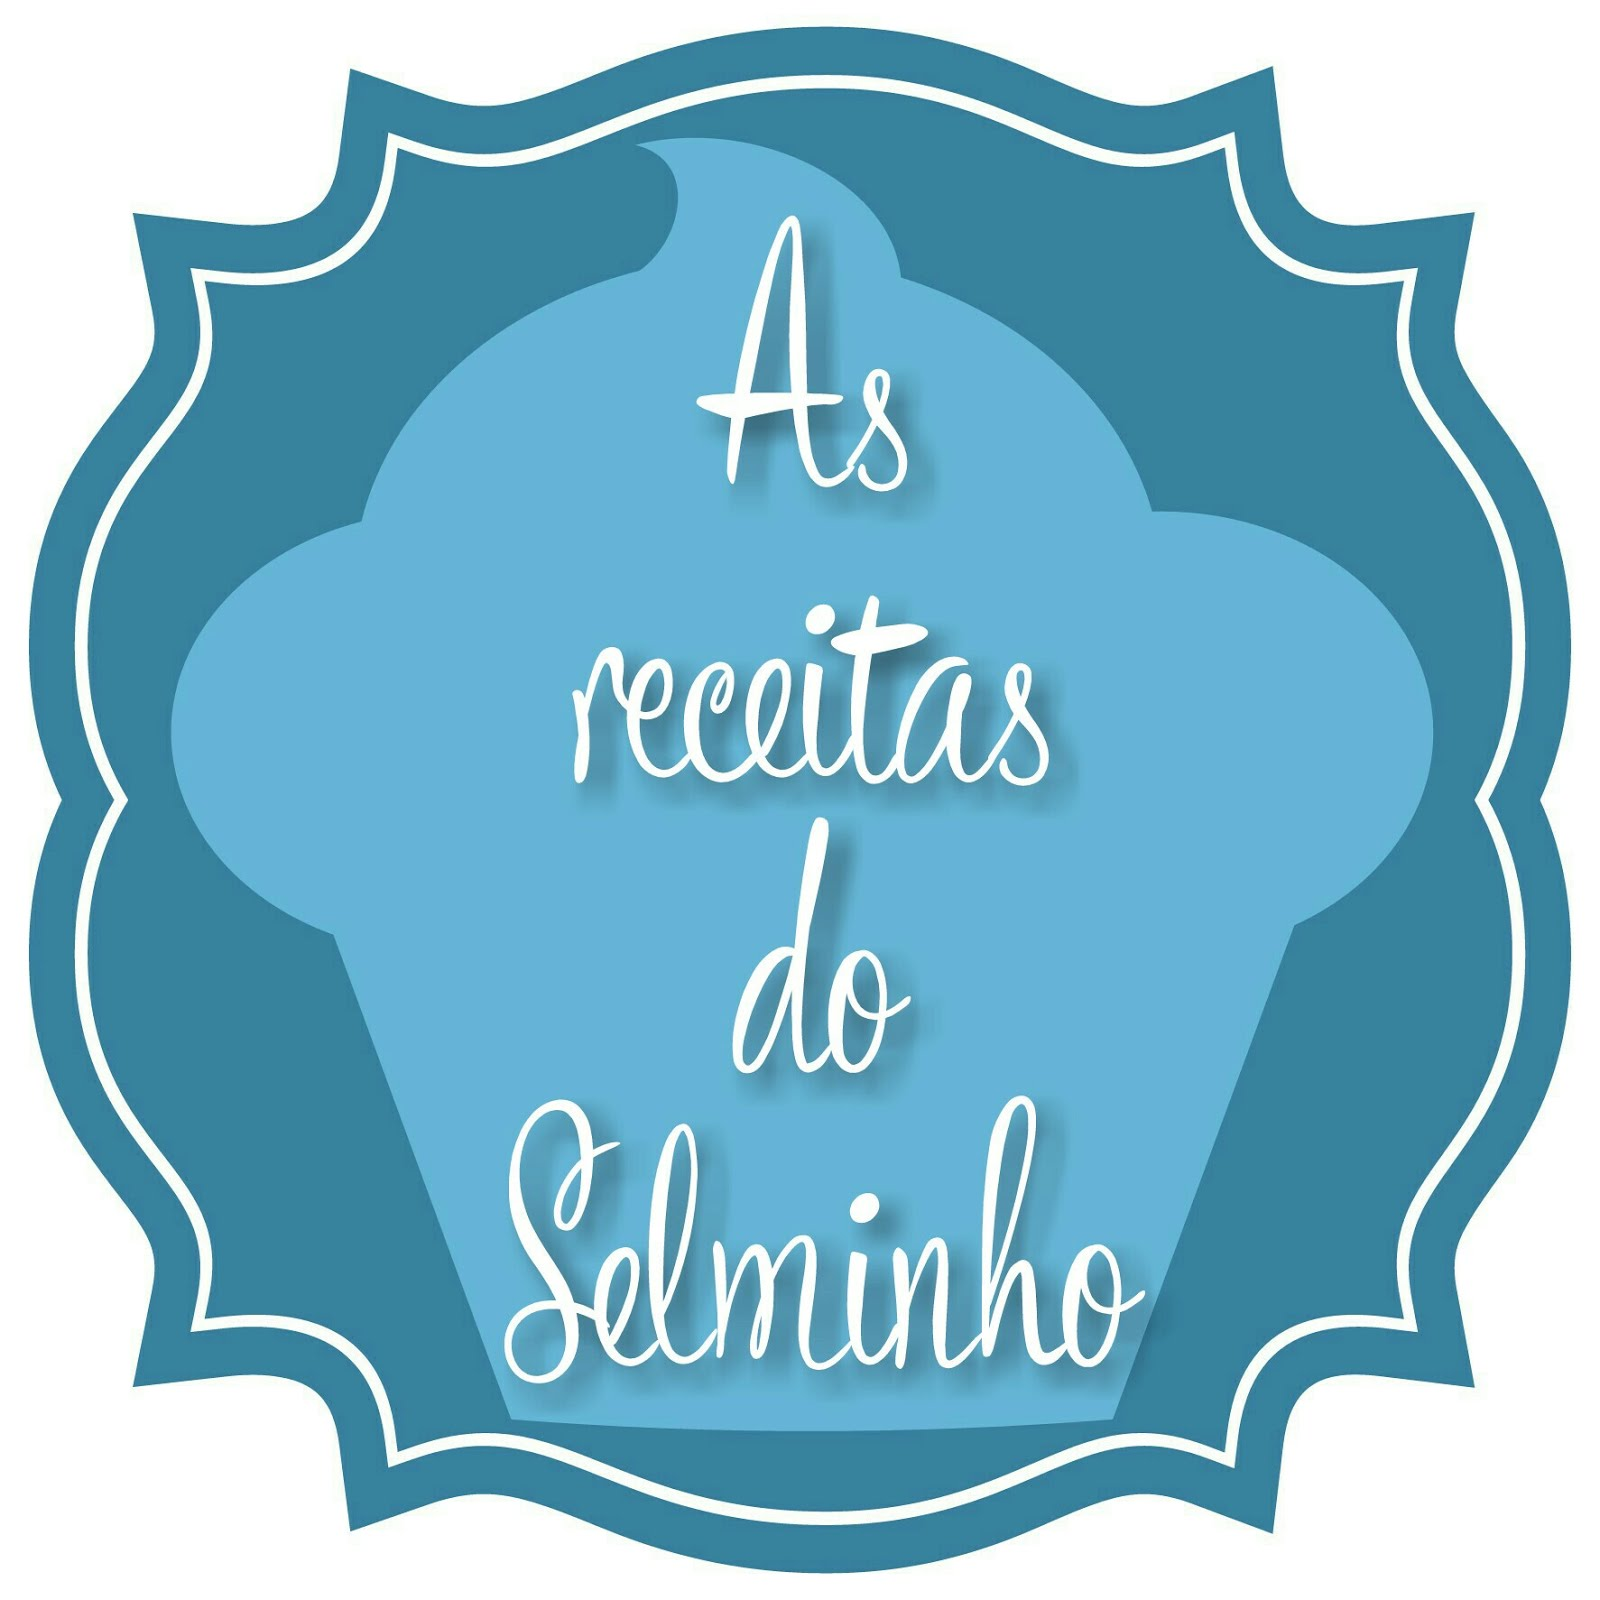 As receitas do Selminho ;-)